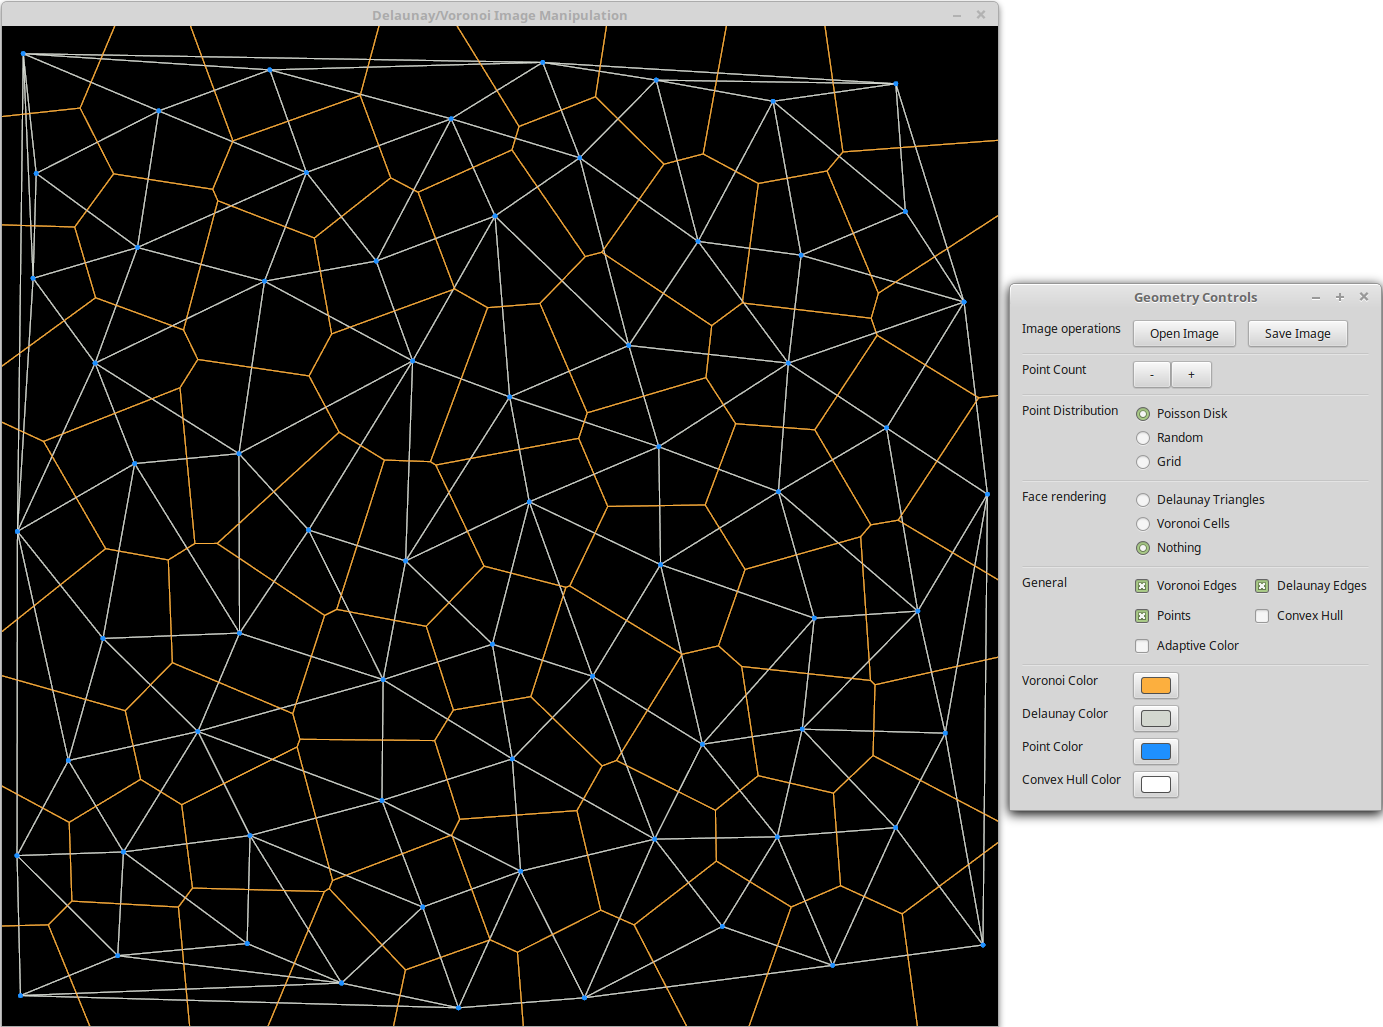 Just voronoi and delaunay